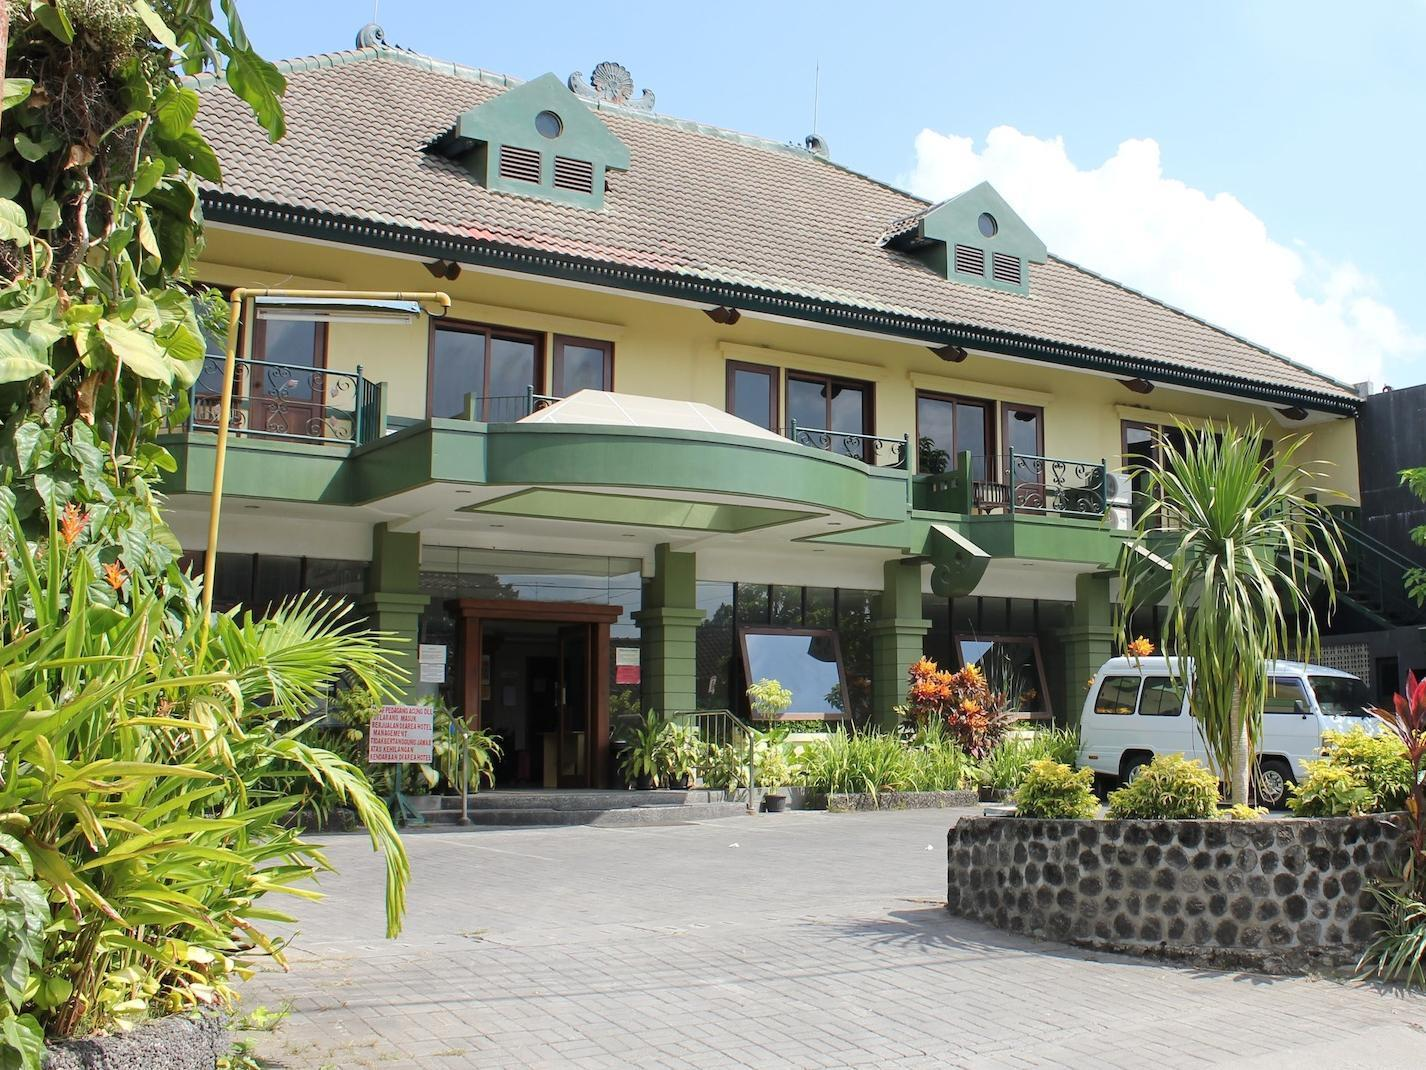 Hotel Winotosastro Garden - Hotels and Accommodation in Indonesia, Asia